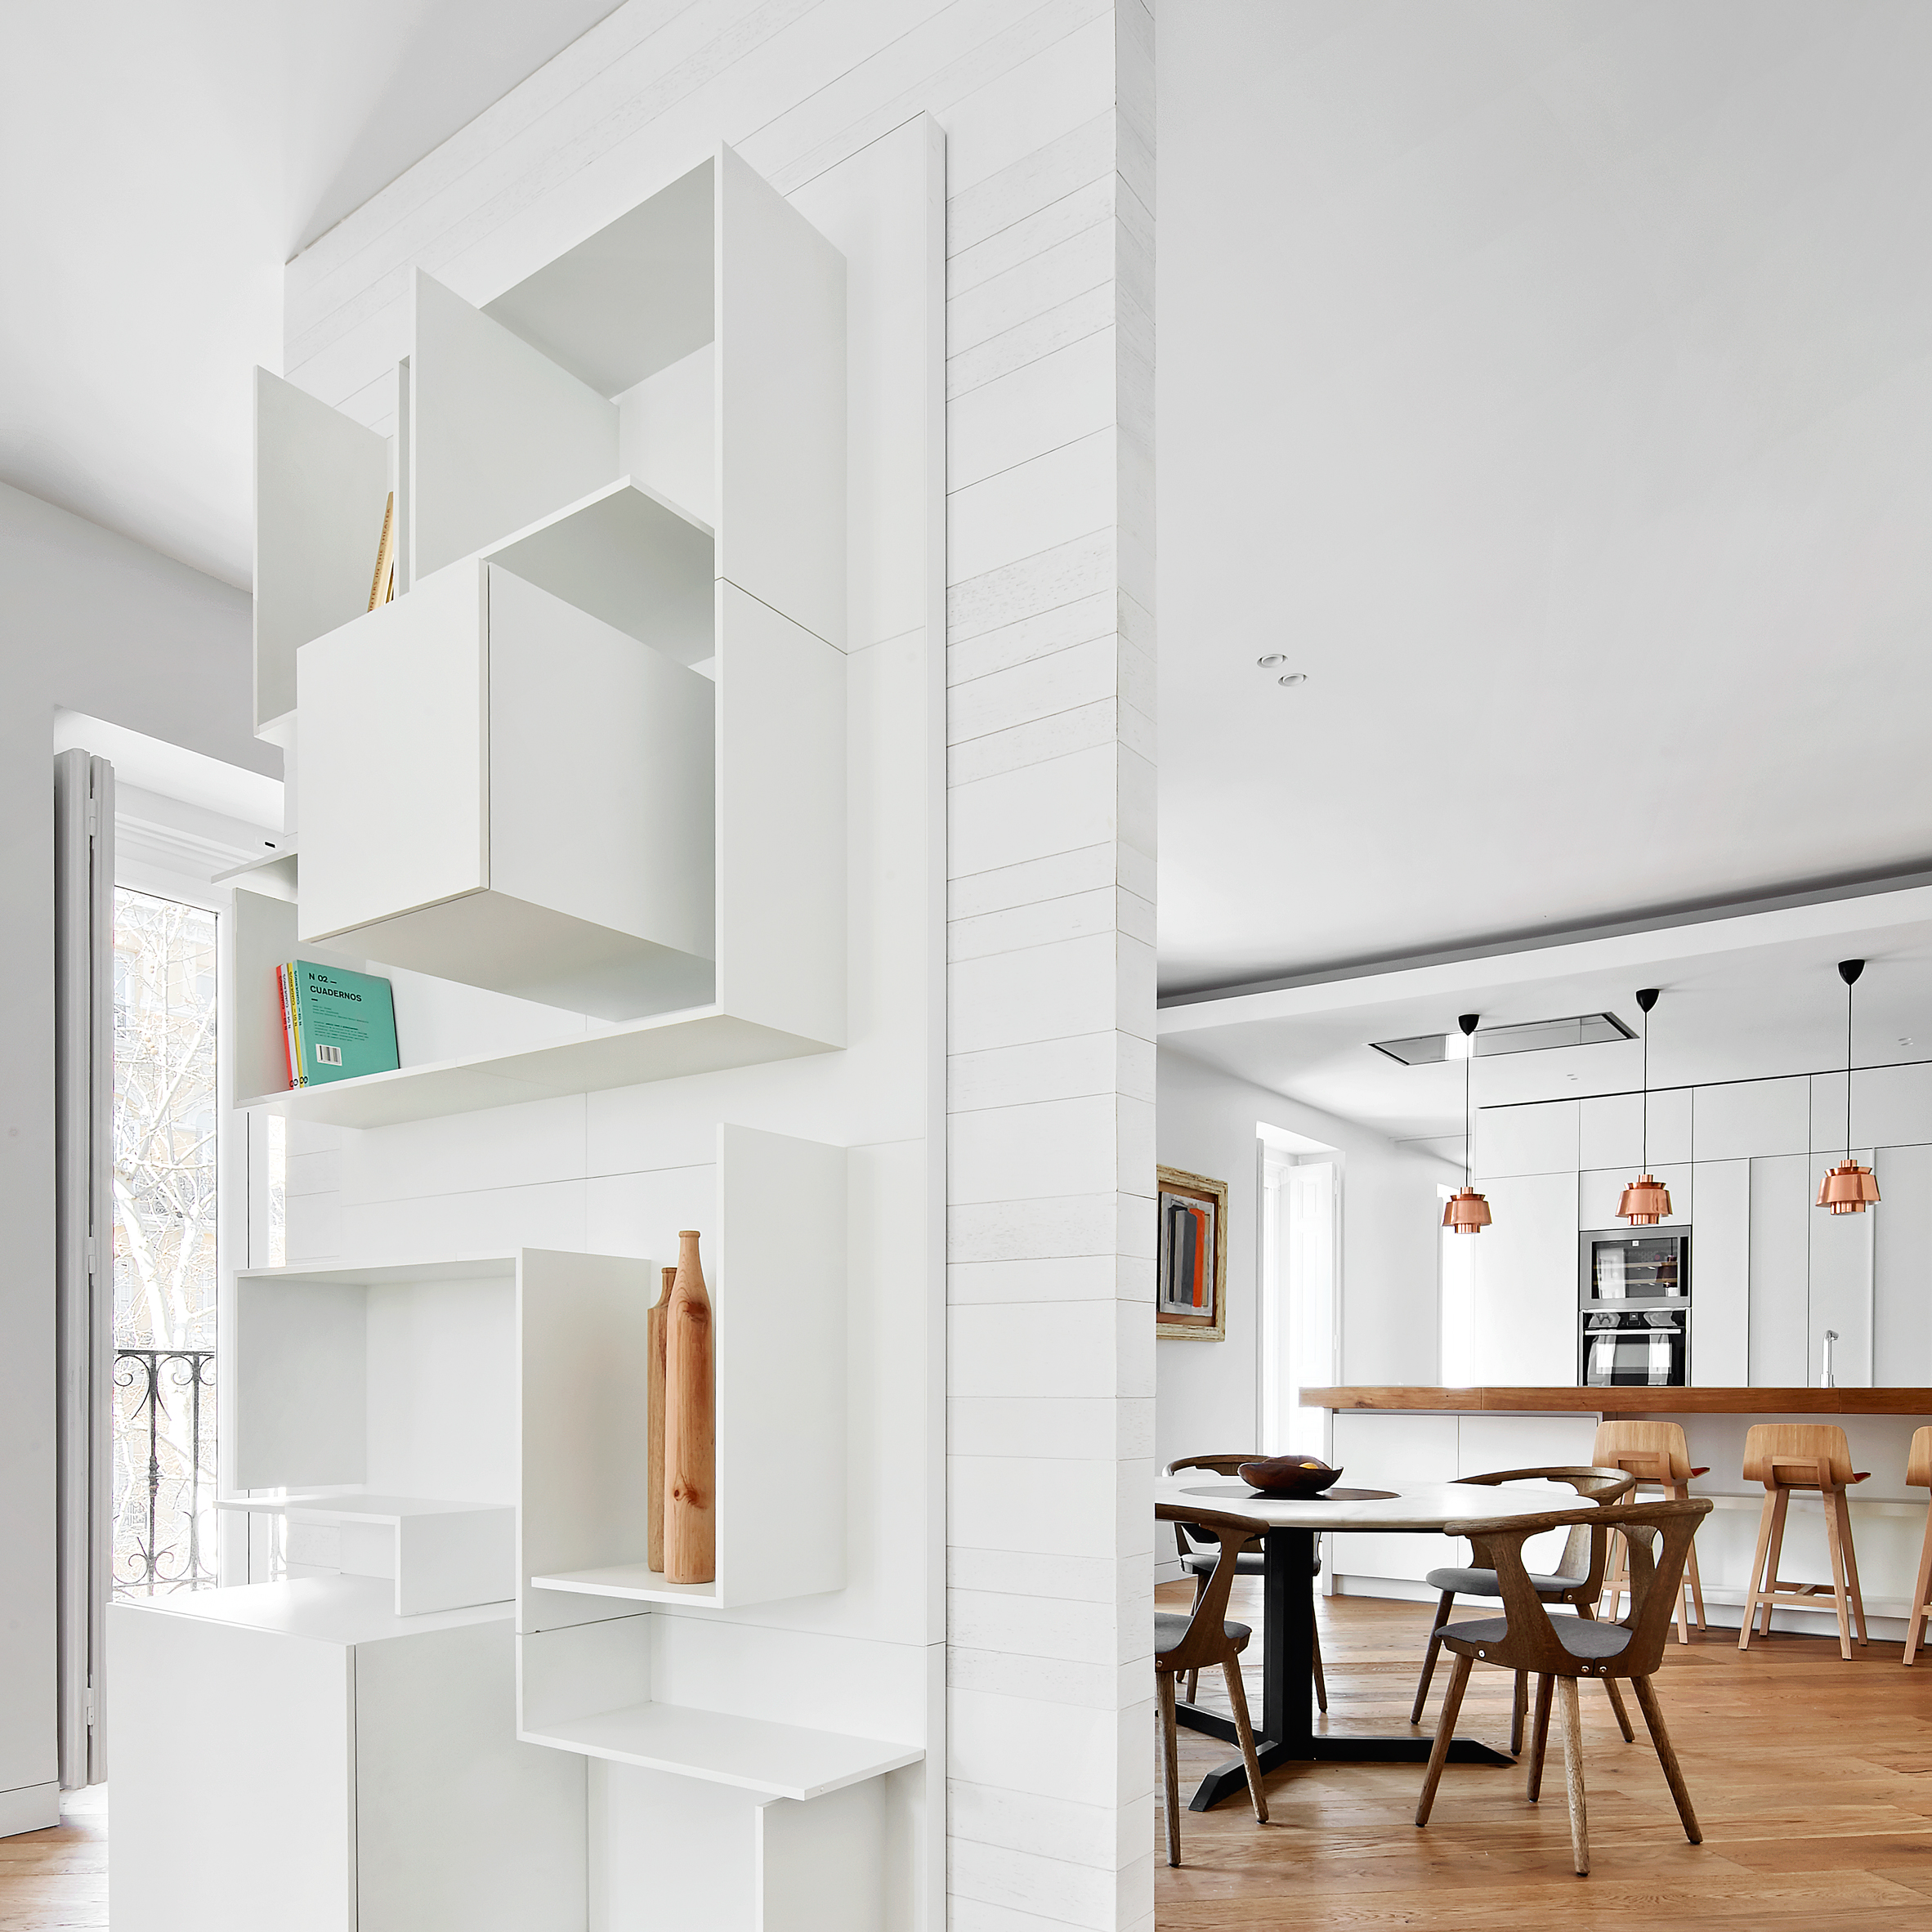 10 homes with clever storage solutions on Dezeen's Pinterest boards